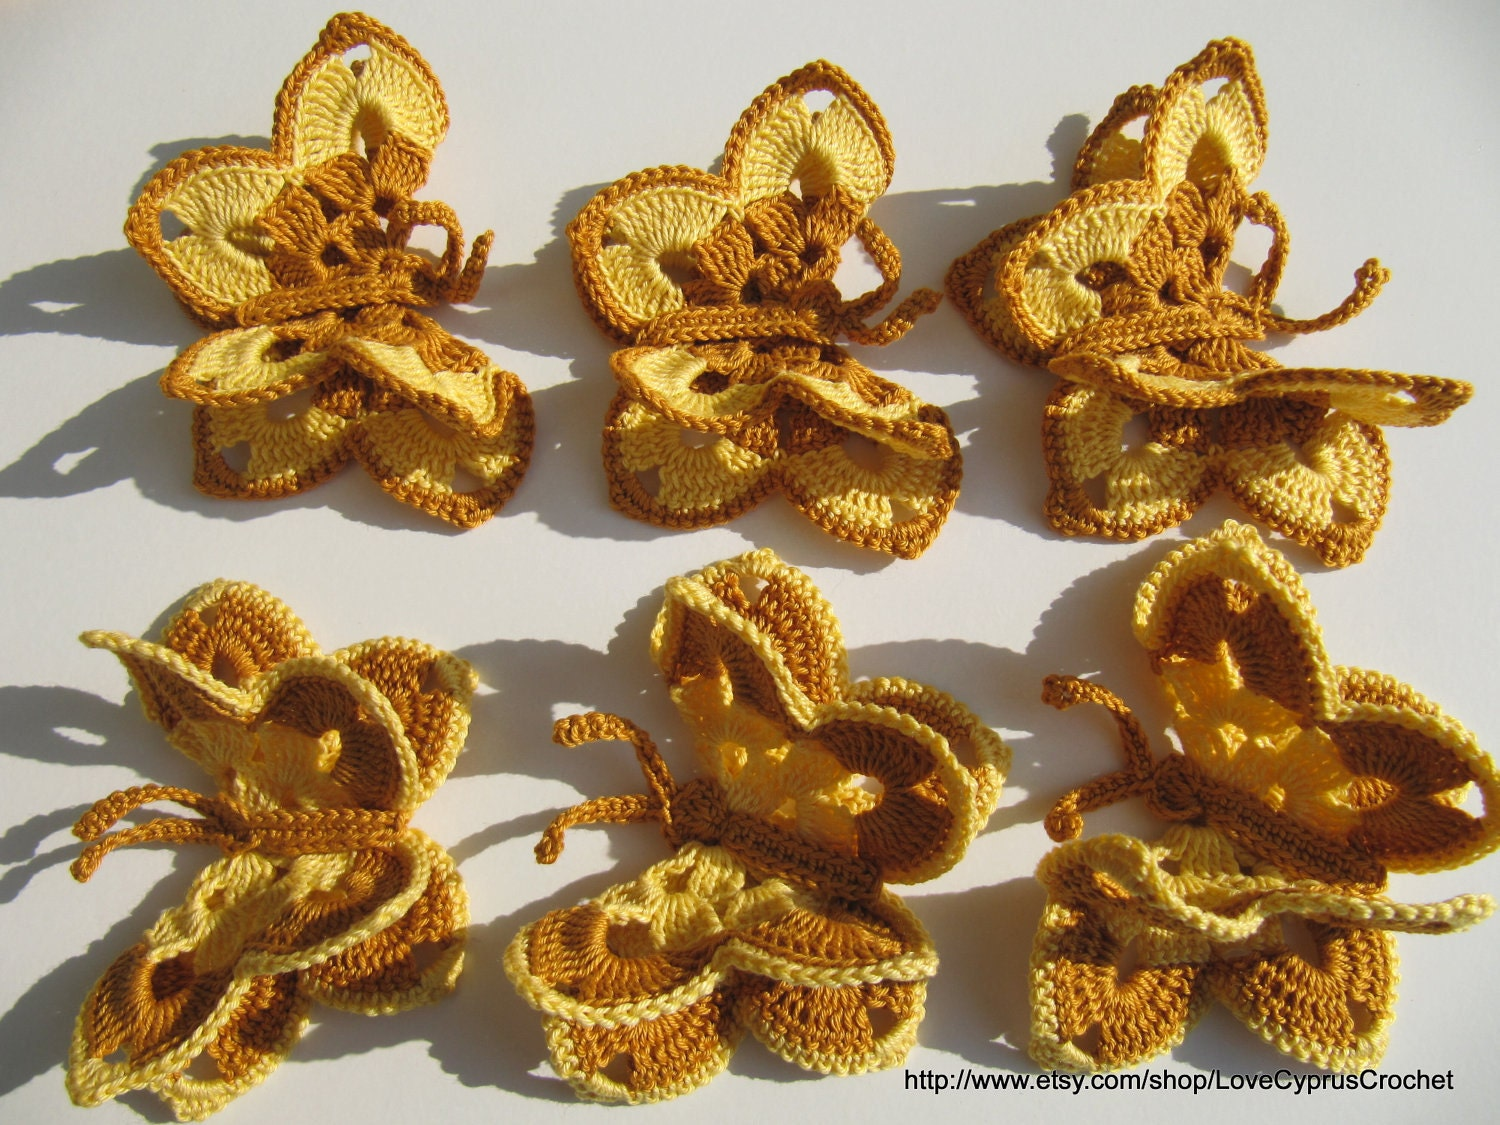 CROCHET BUTTERFLY 6 (pc) , Crochet Yellow Brown Butterfly, Crochet Easter Accessories, Cyprus Crochet Lyubava